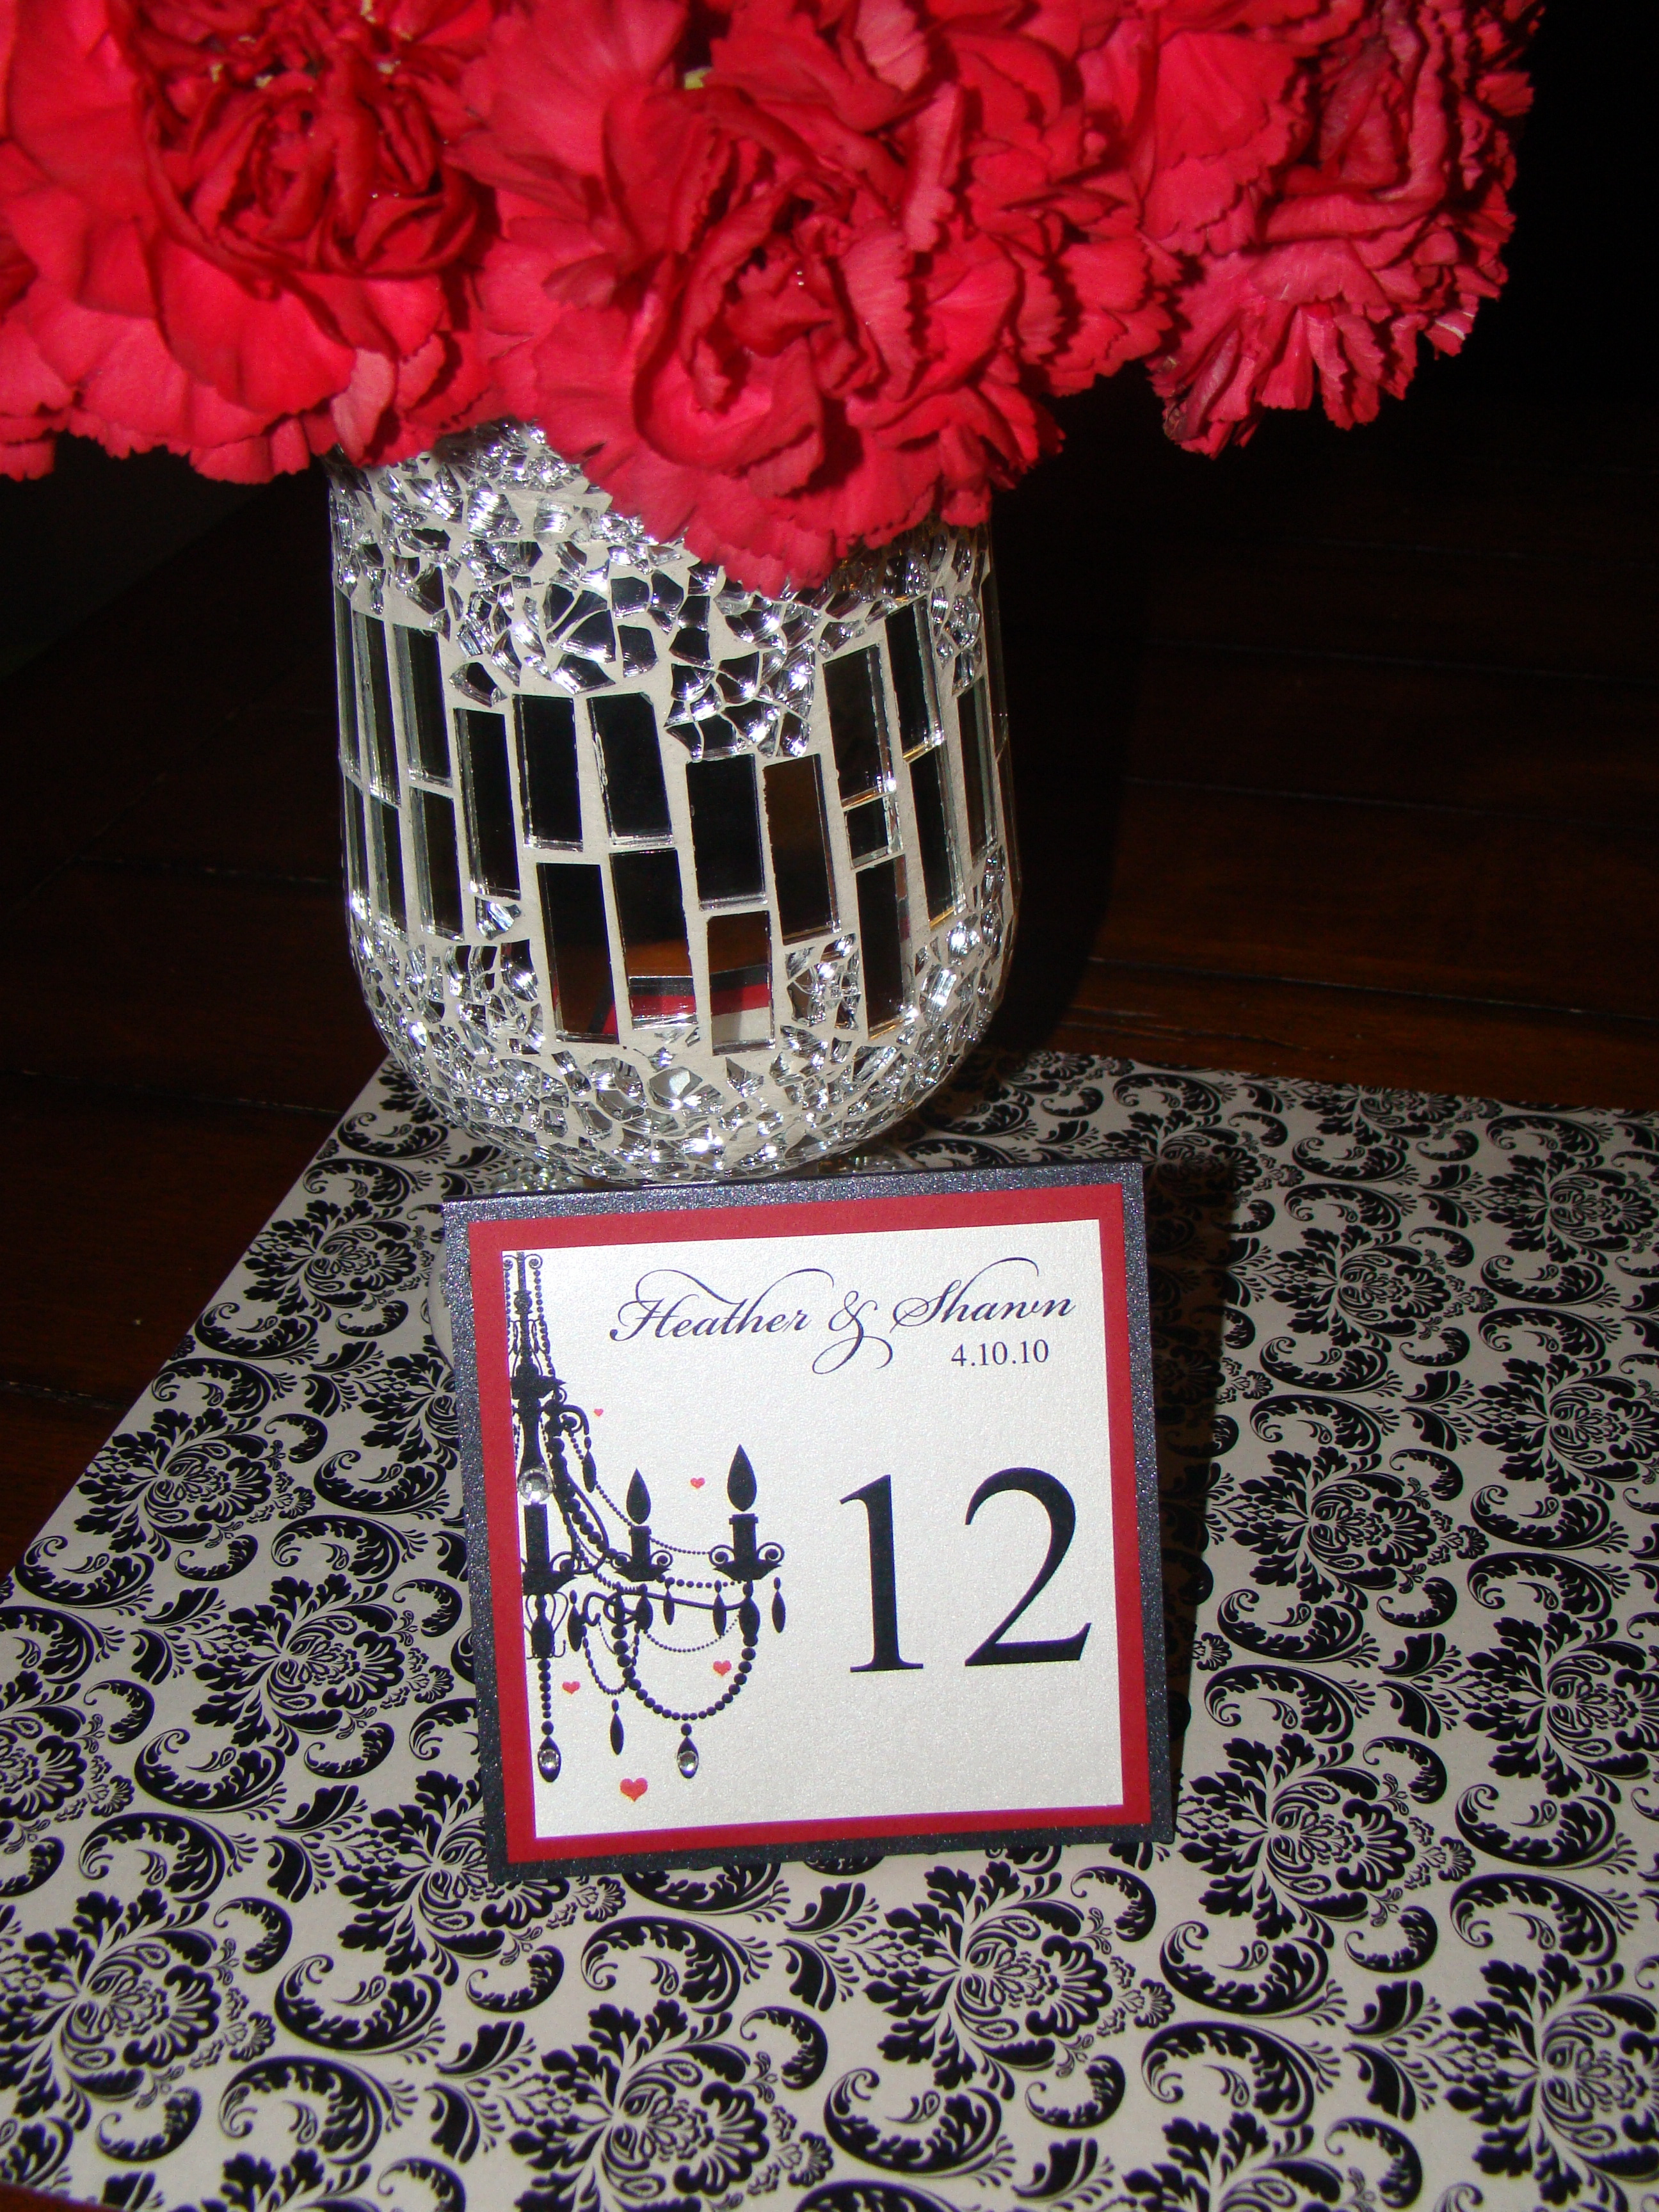 Reception, Flowers & Decor, Stationery, white, red, black, Invitations, Custom, Table, Elegant, Numbers, Pretty, Damask, Pearl, Metallic, Divine designs llc